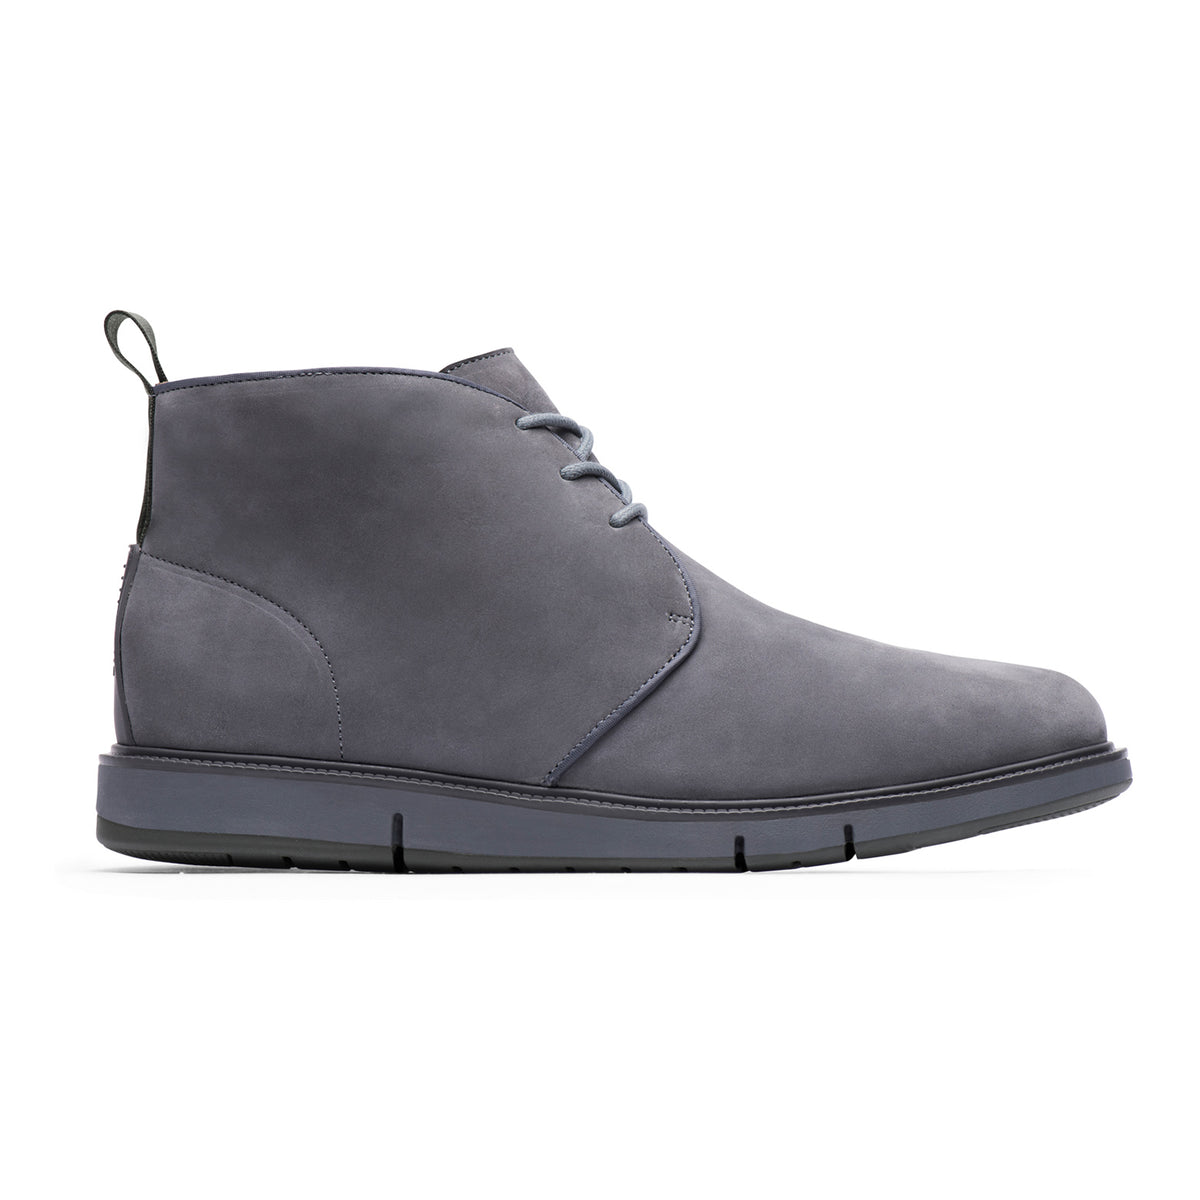 Motion Chukka - background::white,variant::Gray/Olive